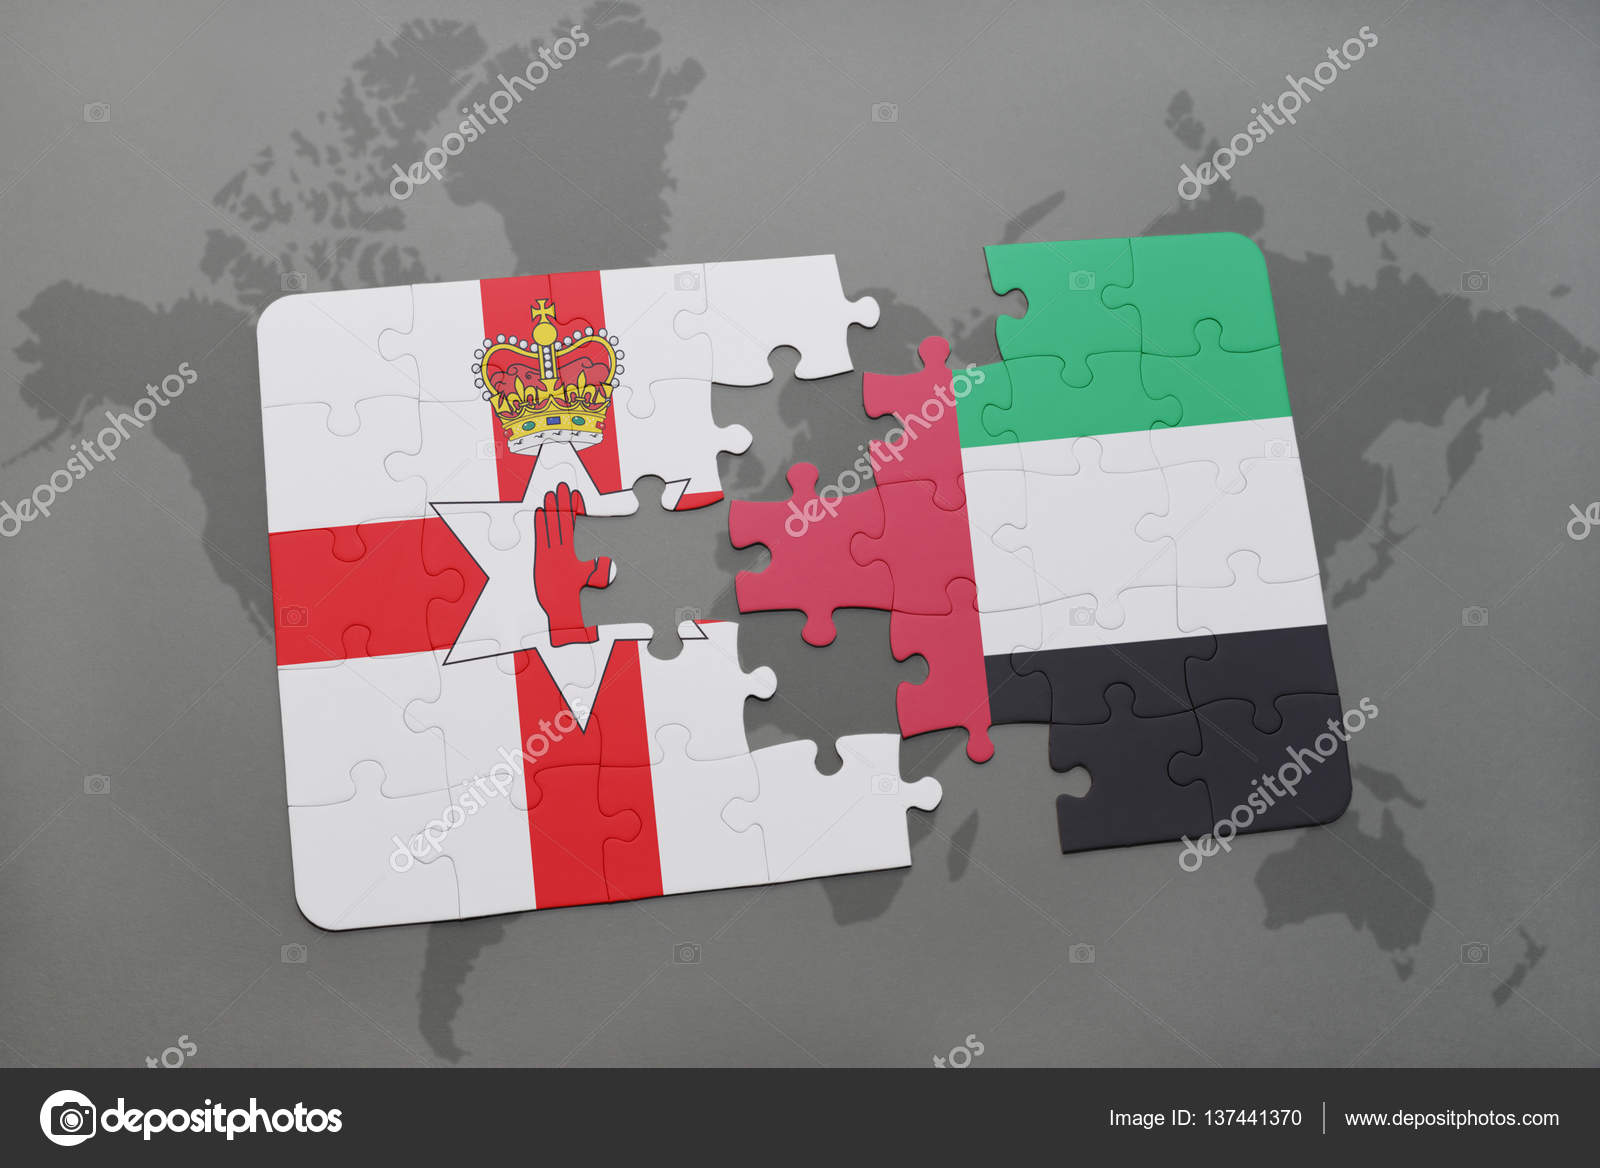 Puzzle with the national flag of northern ireland and united ... on map of gibraltar, map of southern ireland, map of county mayo, map of austria, map of israel, map of united kingdom, map of scotland, map of england, map of belfast, map of wales, map of ireland counties, map of afghanistan, map of europe, map of ballybofey, map of dublin, map of giant's causeway, map of uk, map of ireland map, map of ulster, map of us and ireland,